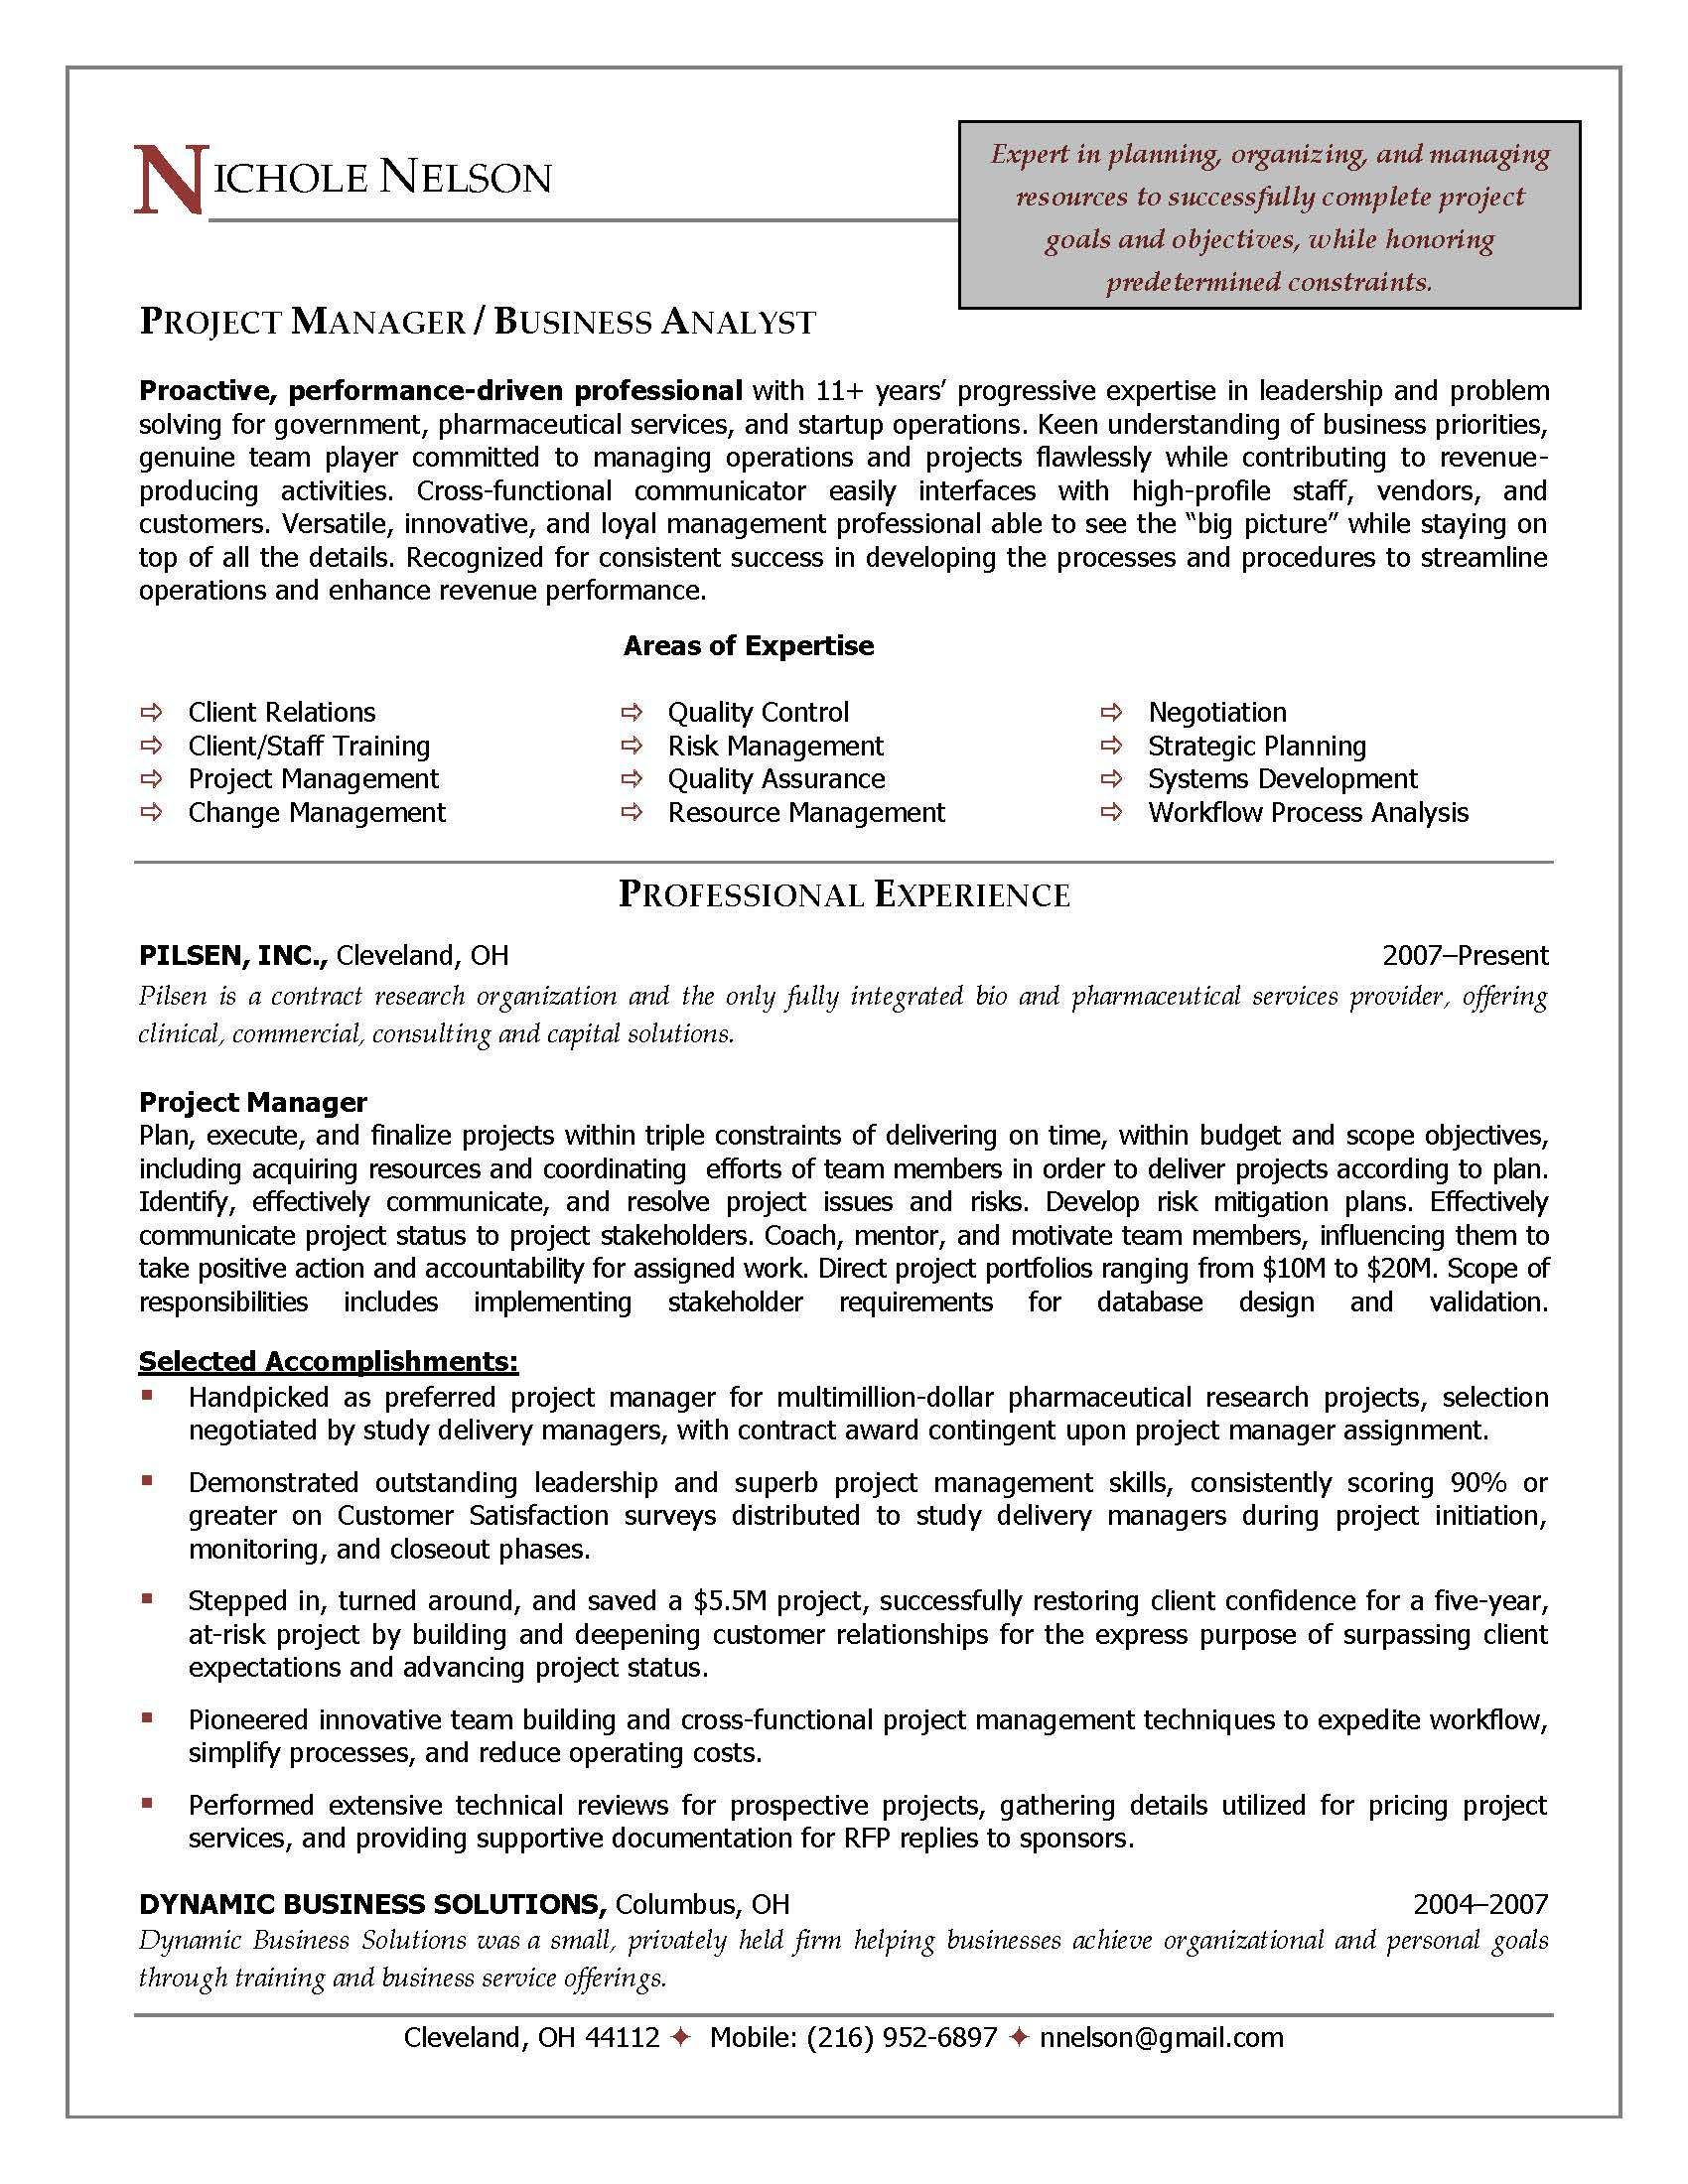 Resume For Project Manager Project Manager Resume Sample Provided Elite Writing Program Free